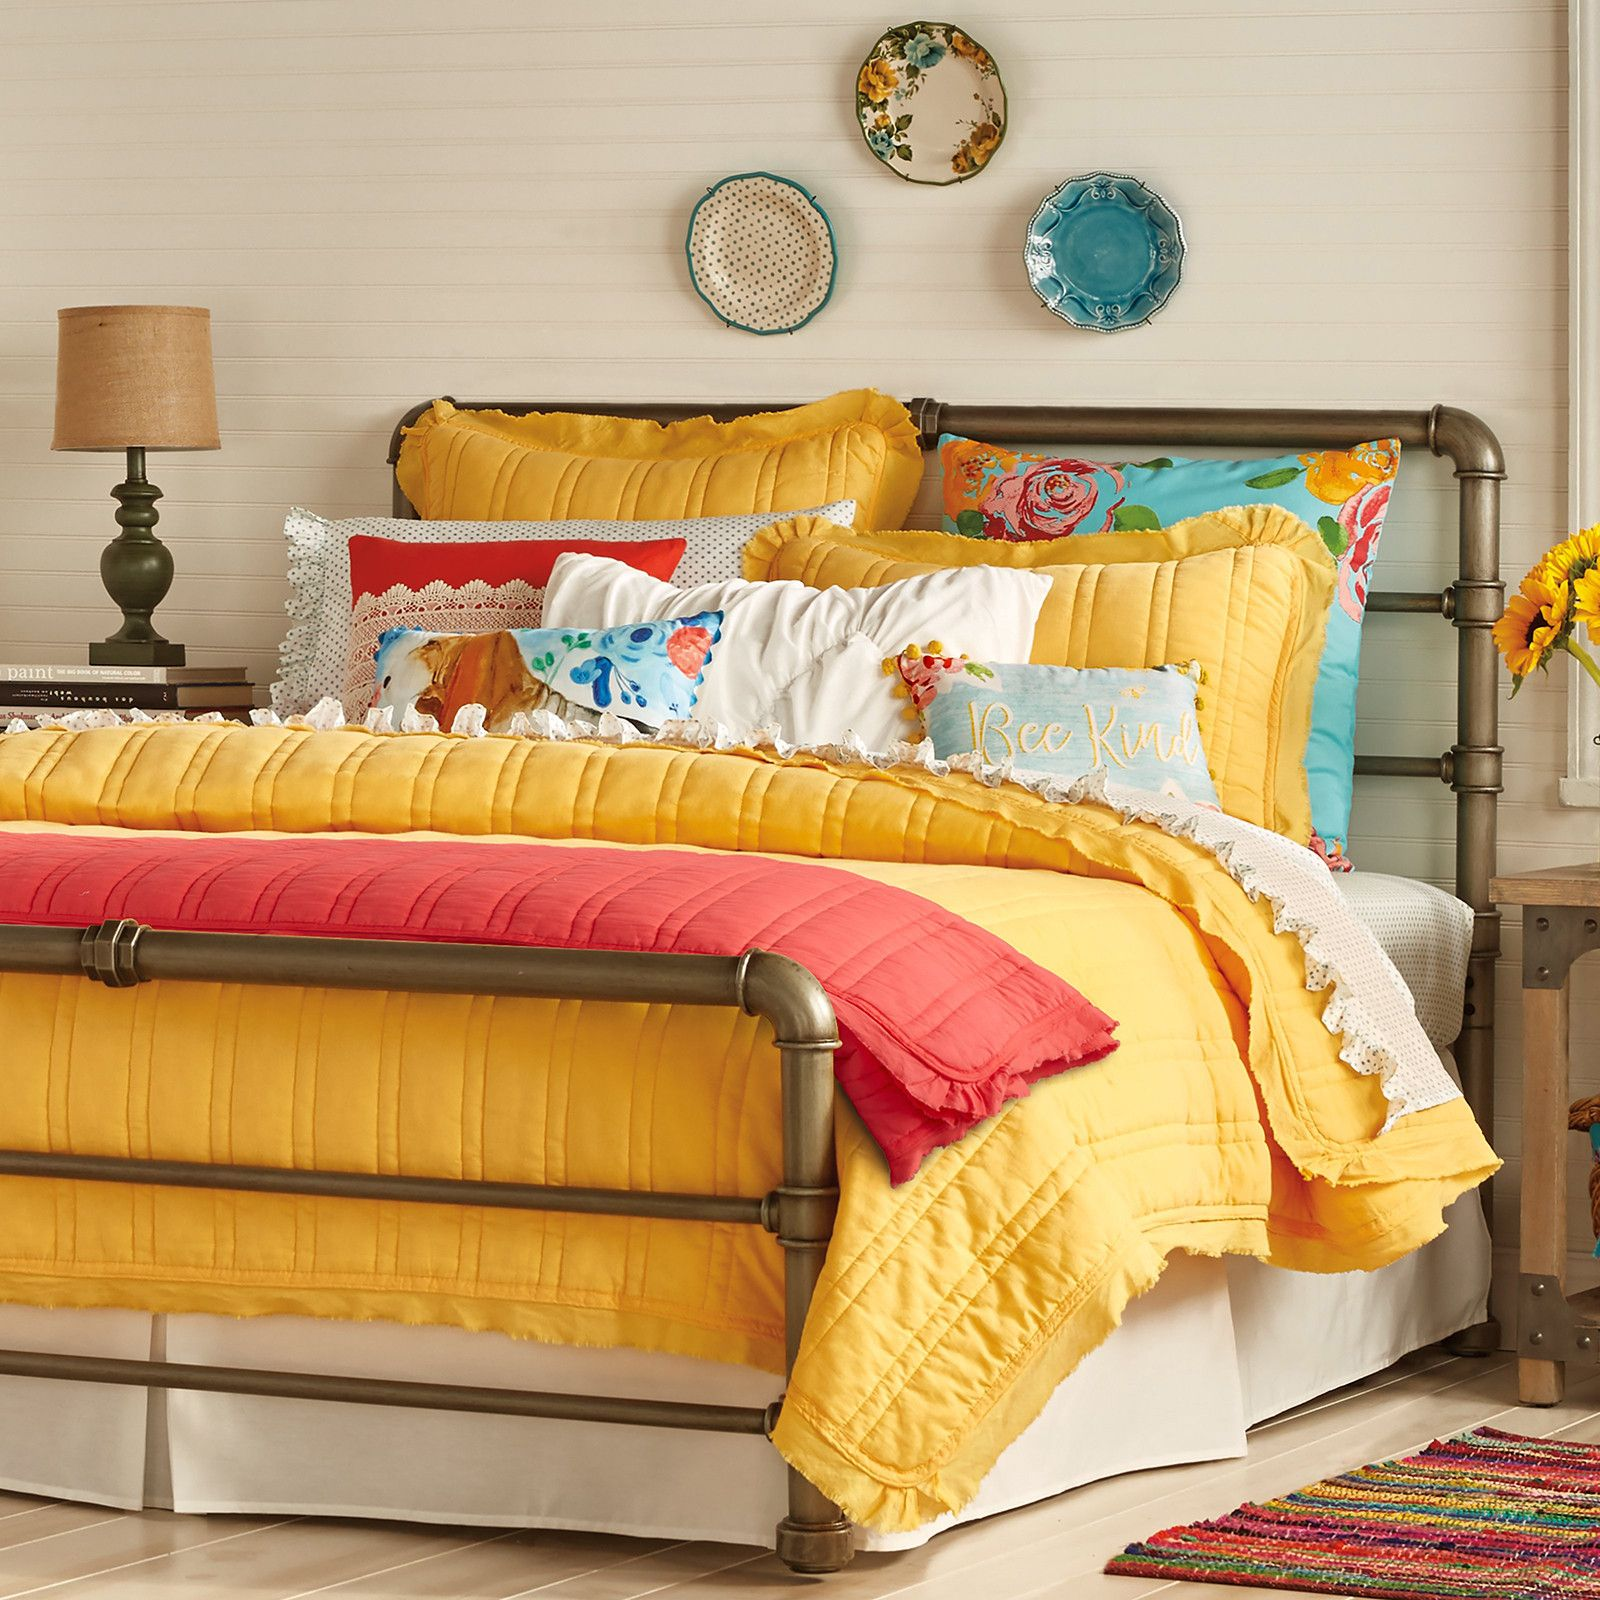 Mix And Match Magic: Bedding By The Pioneer Woman